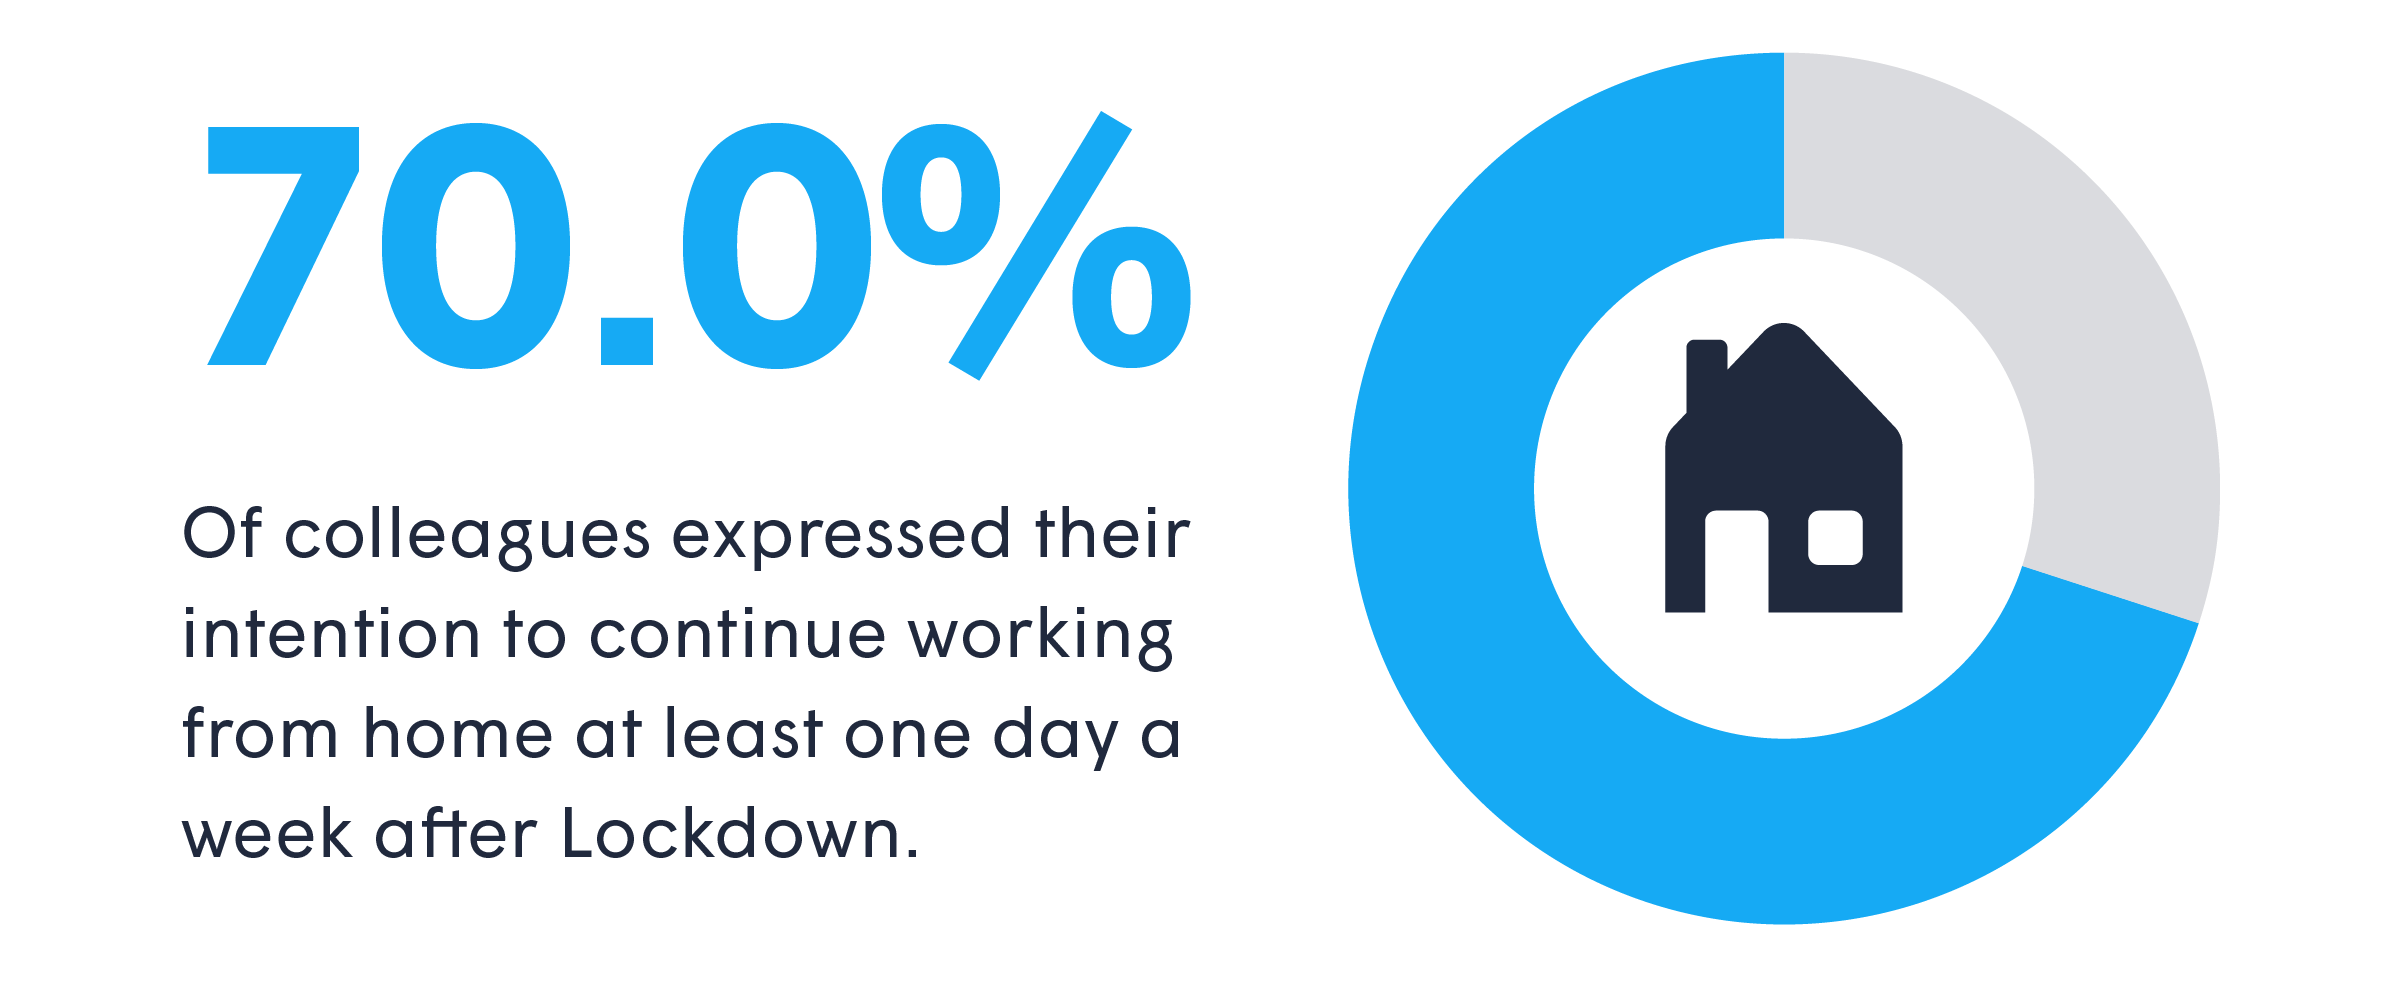 70 percent of colleagues intend to work from home